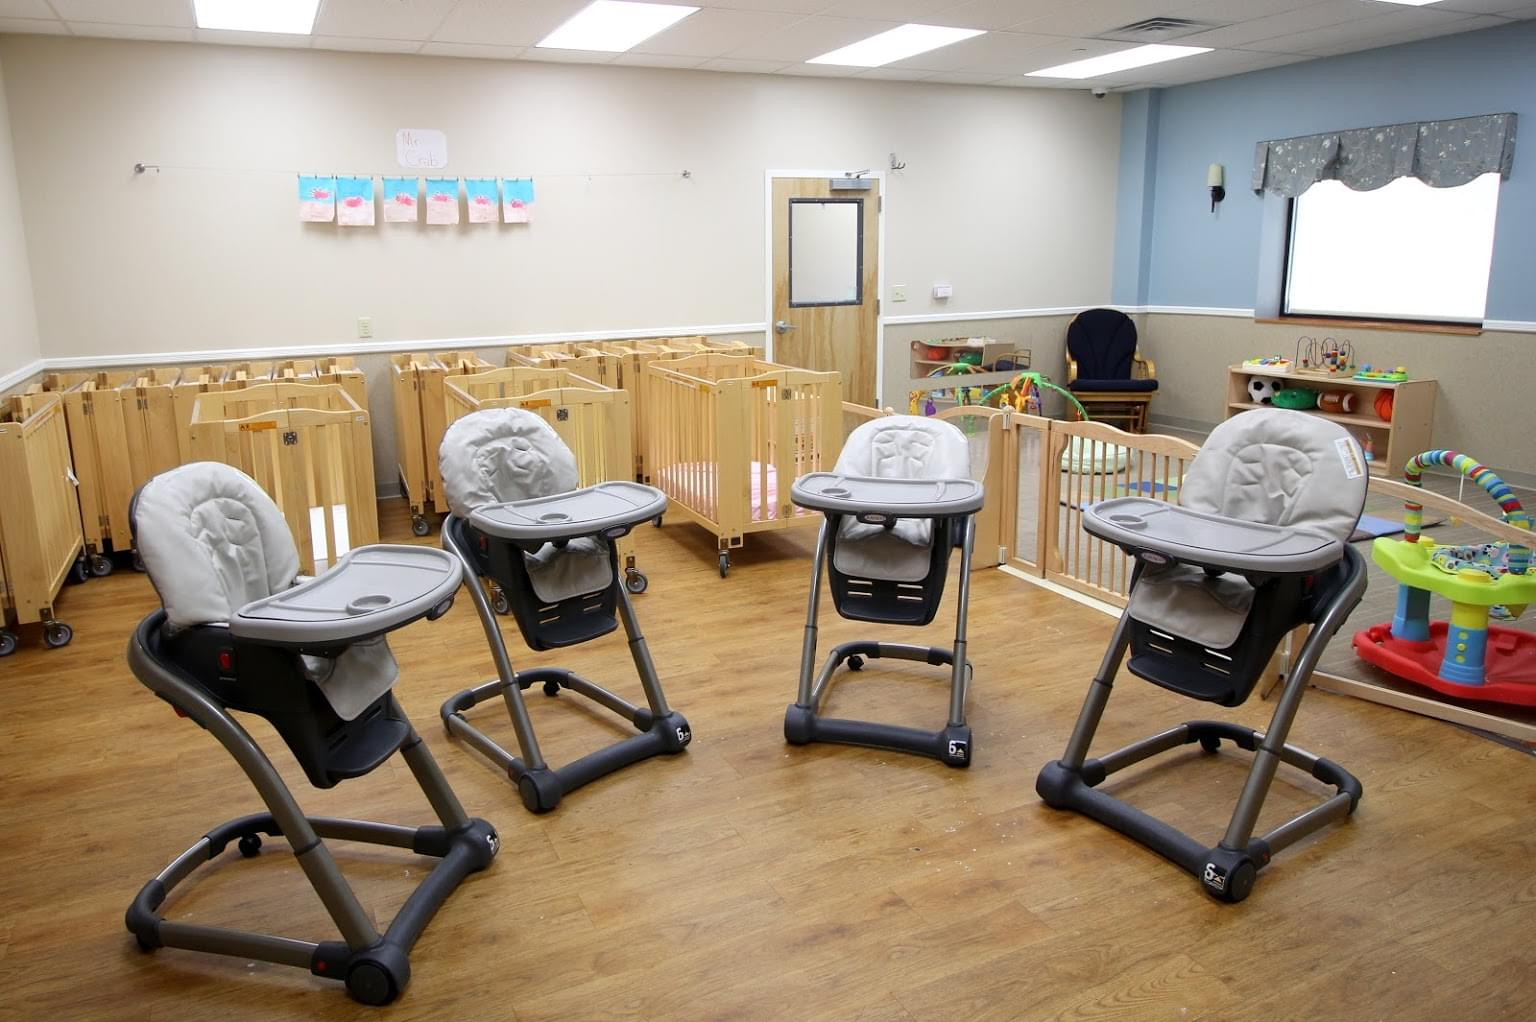 Lightbridge Academy Day Care Center in Clifton, NJ infant high chairs